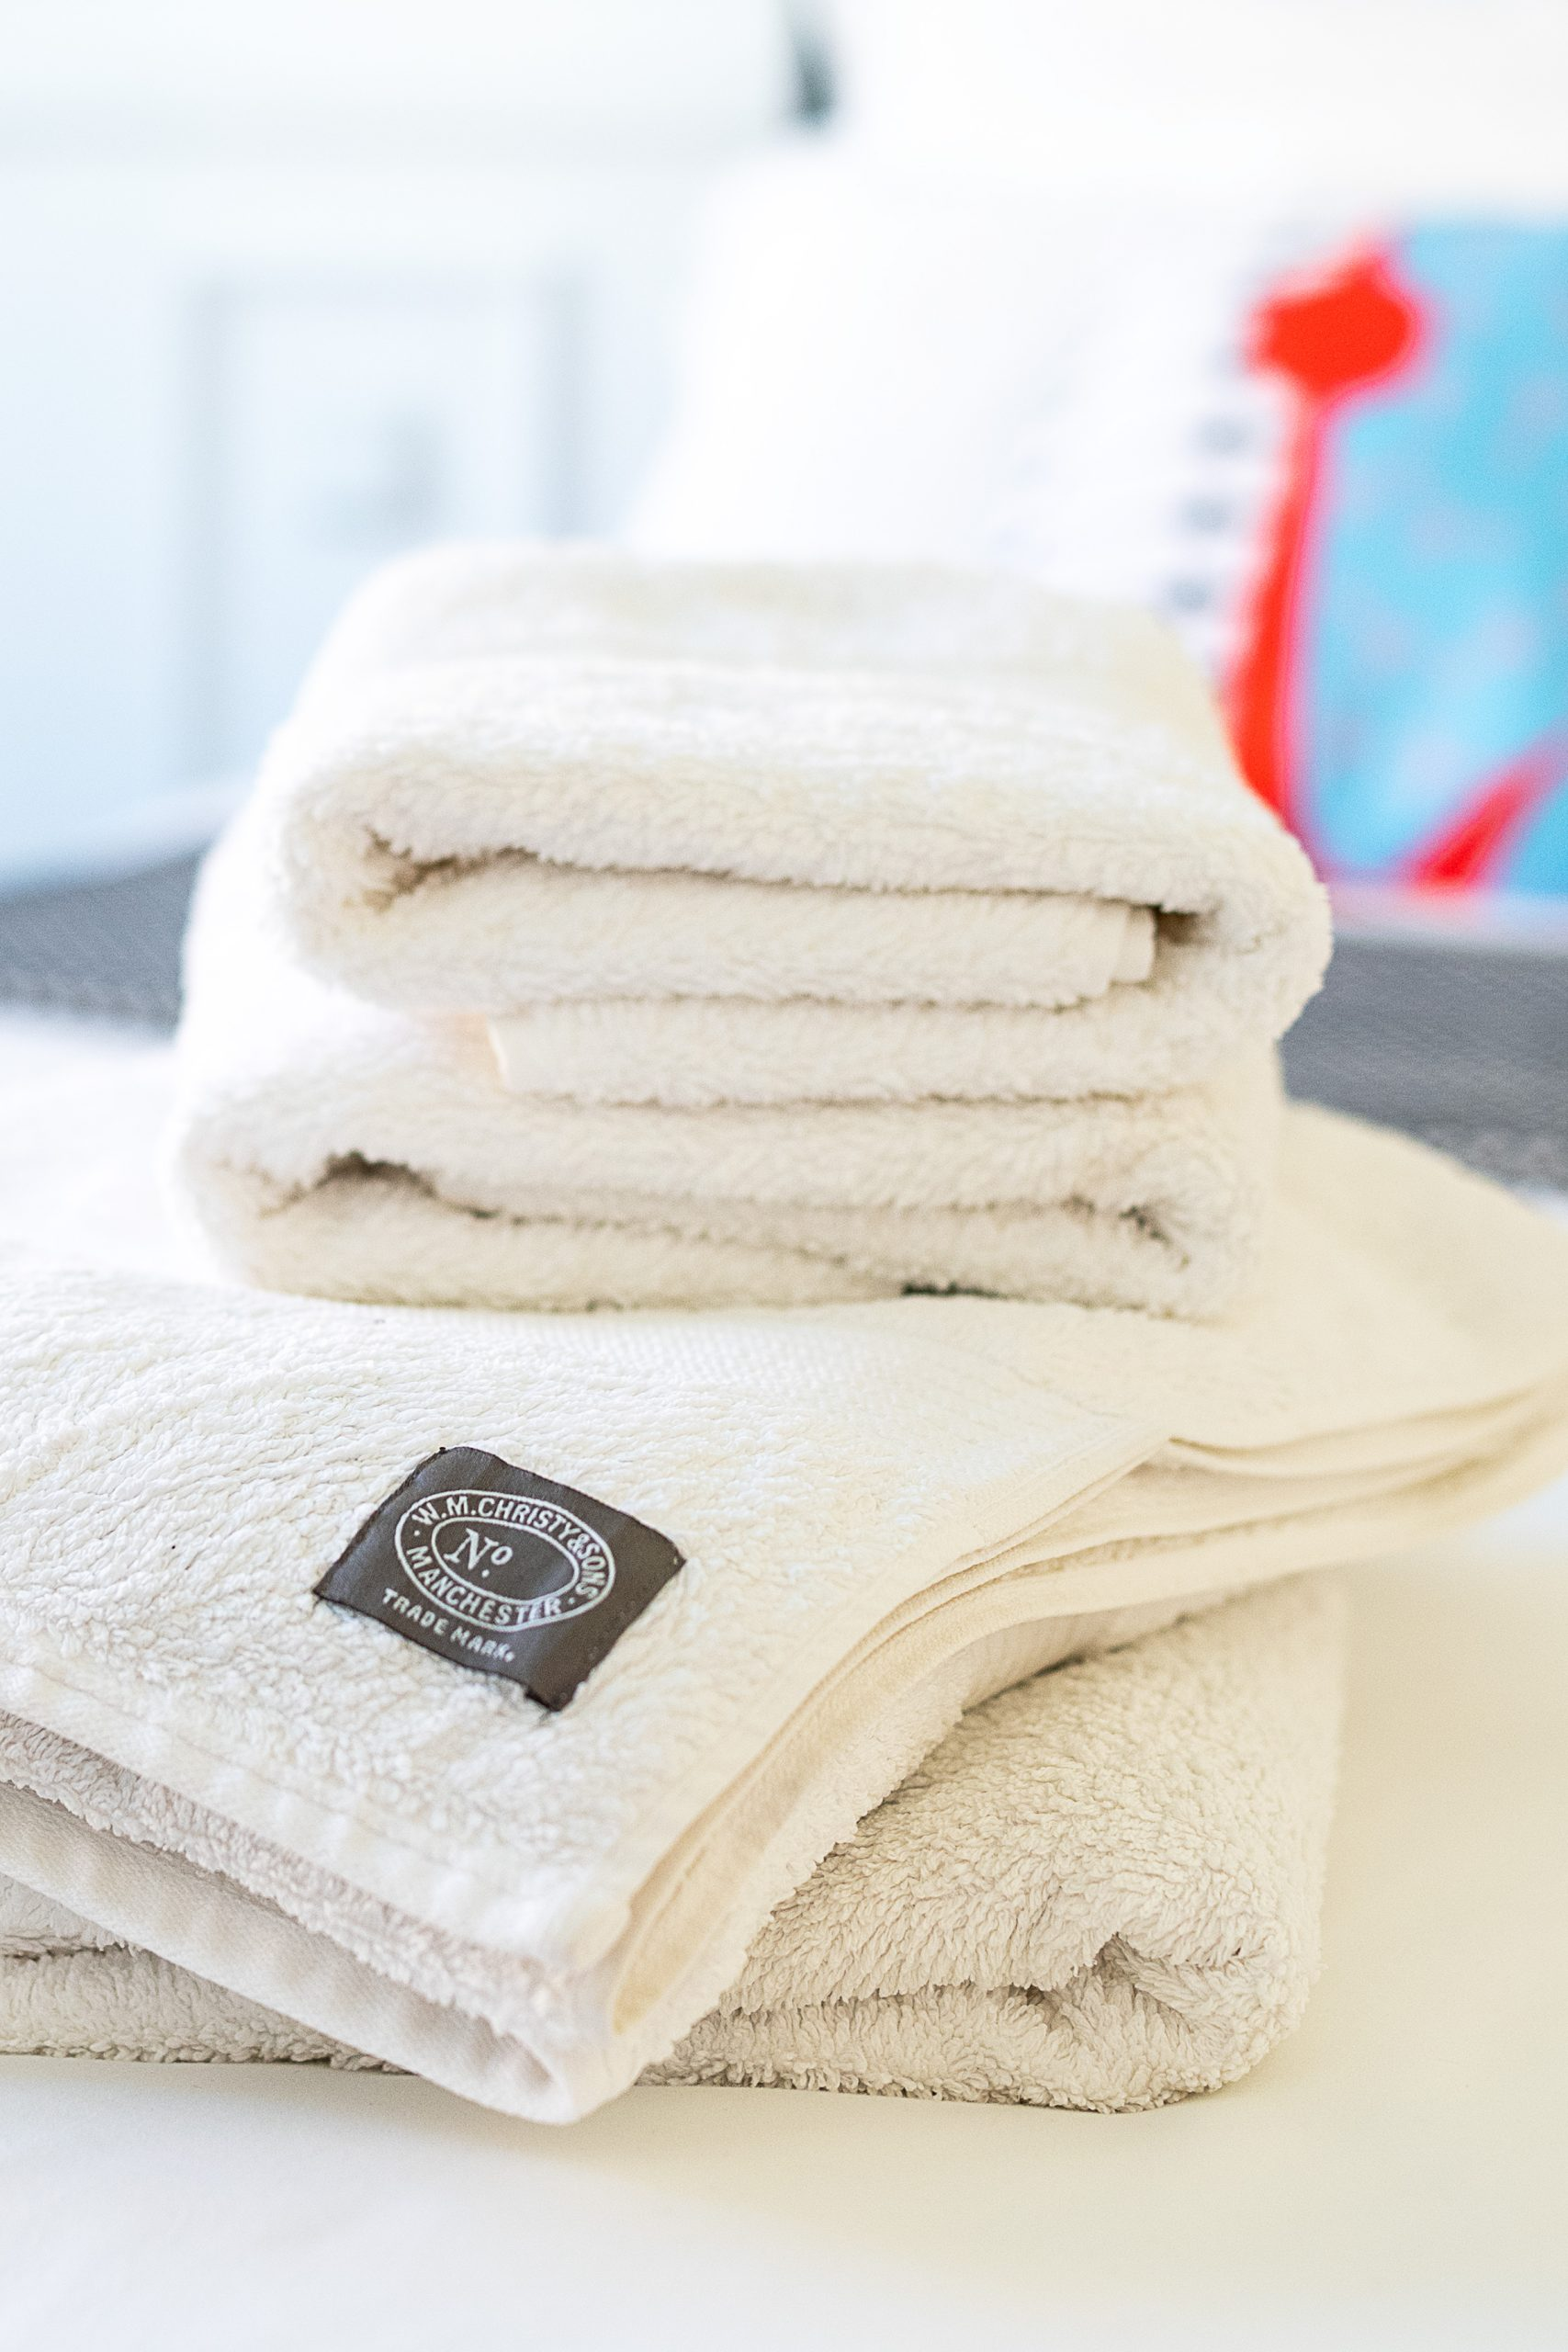 Guest Bedroom Essentials - Fluffy Towels